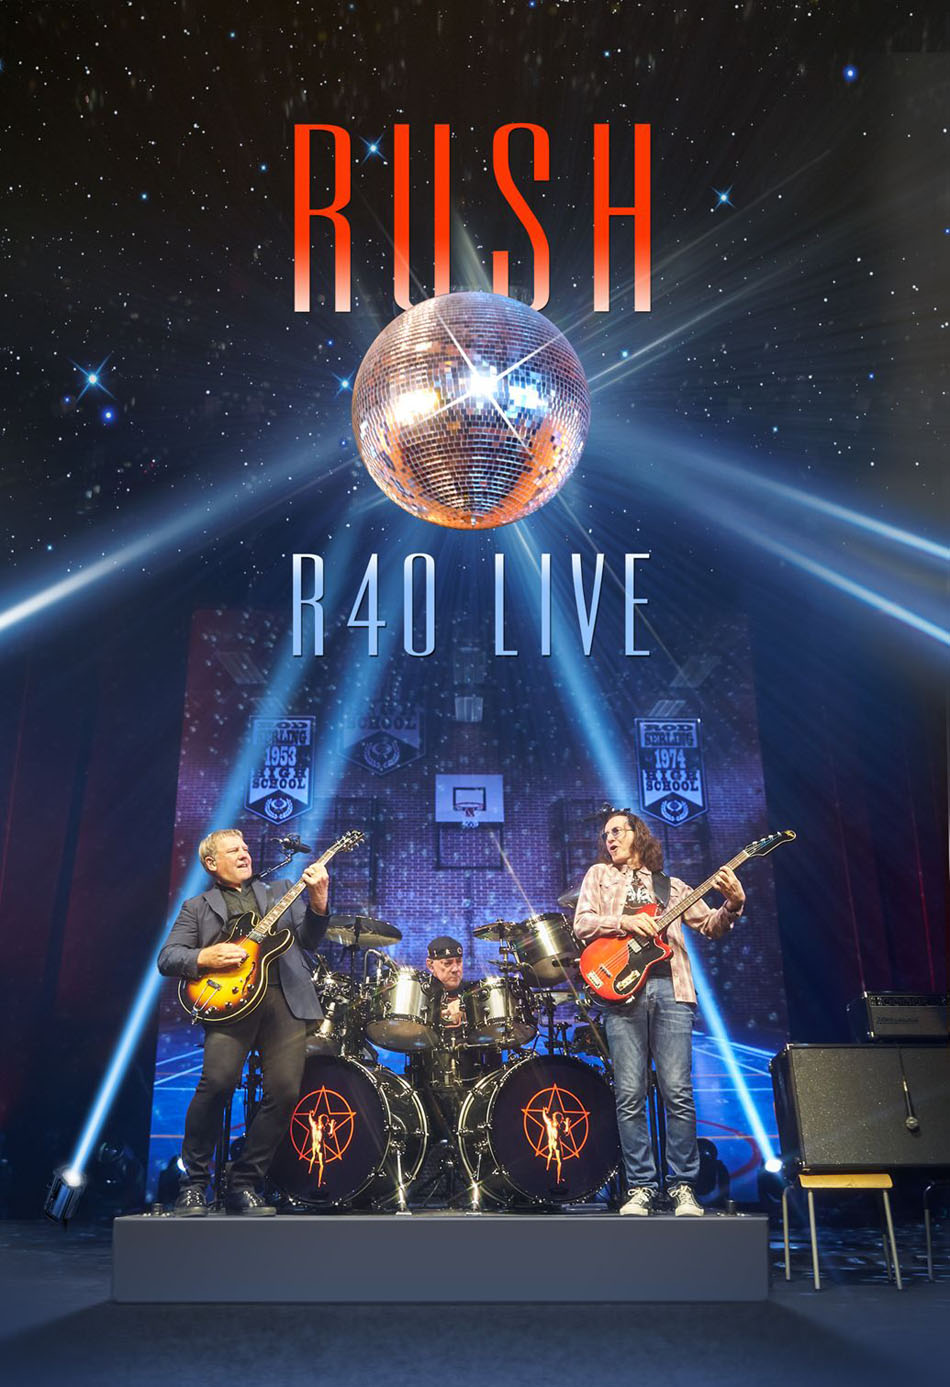 Rush's R40 Live Concert Video Certified GOLD by the RIAA